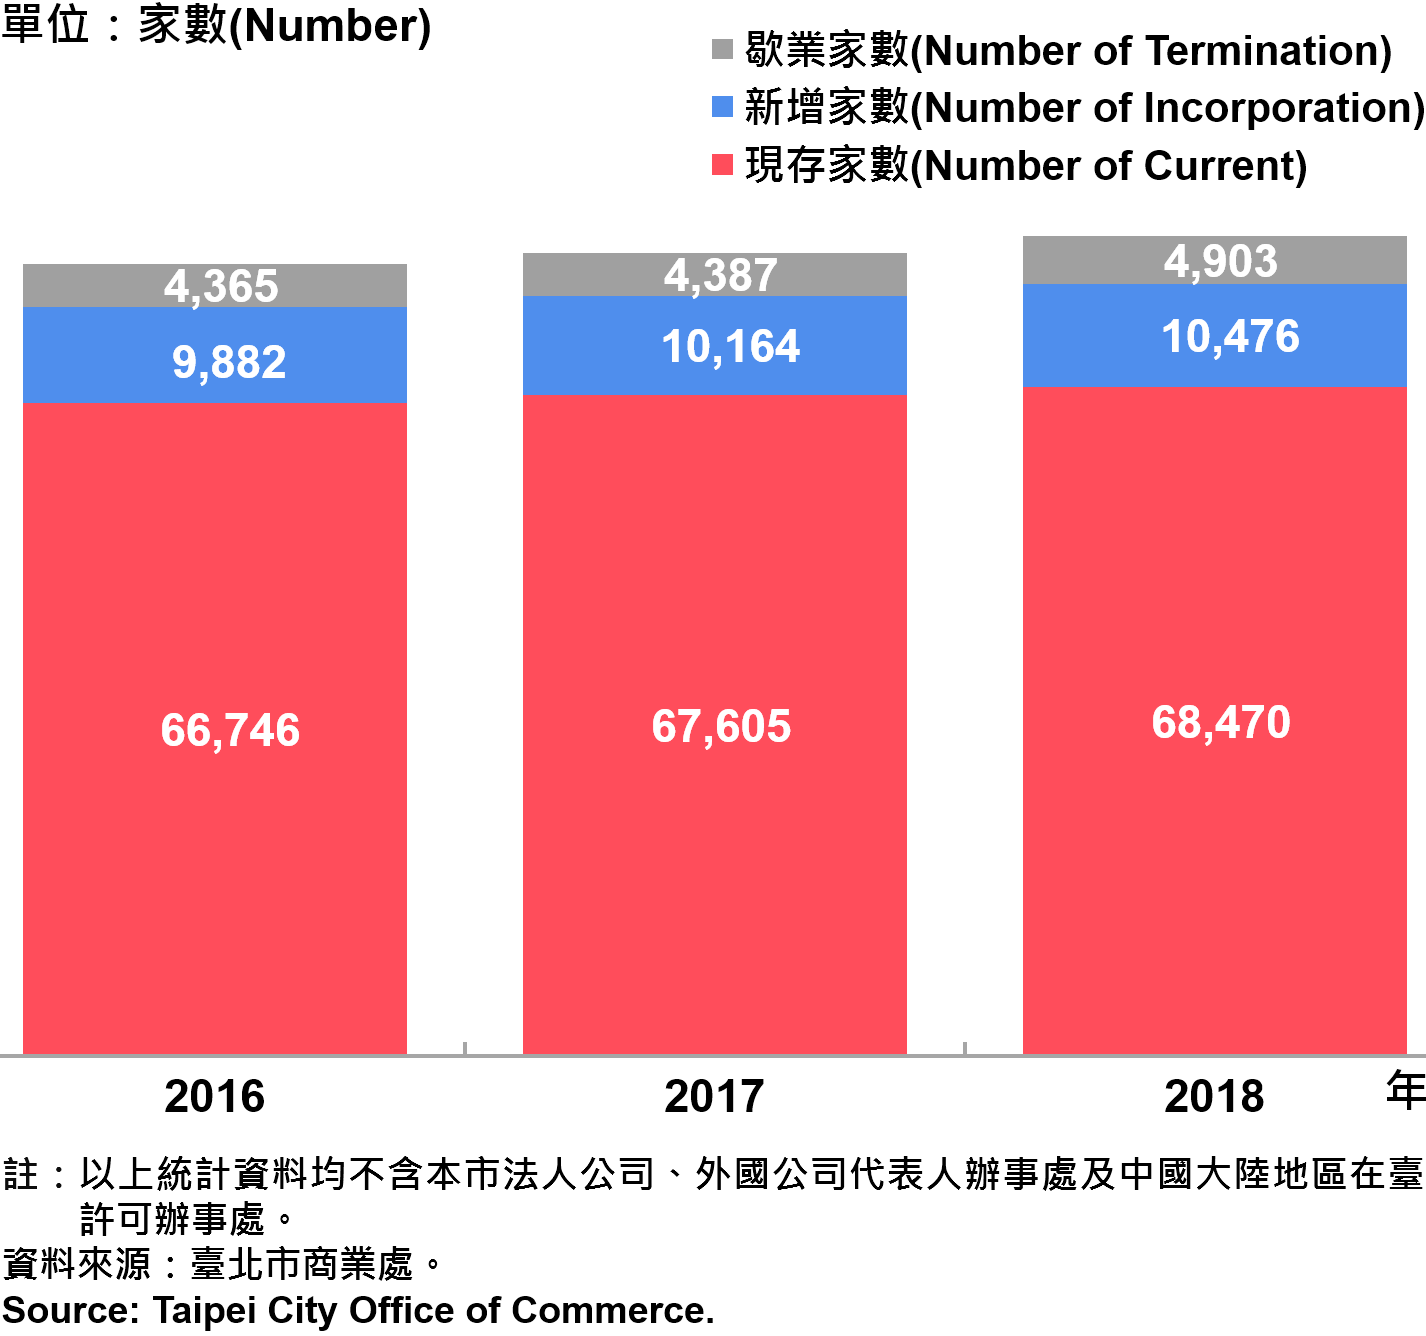 臺北市公司行號之青創負責人分布情形—2018 Responsible Person of Newly Registered Companies In Taipei City —2018